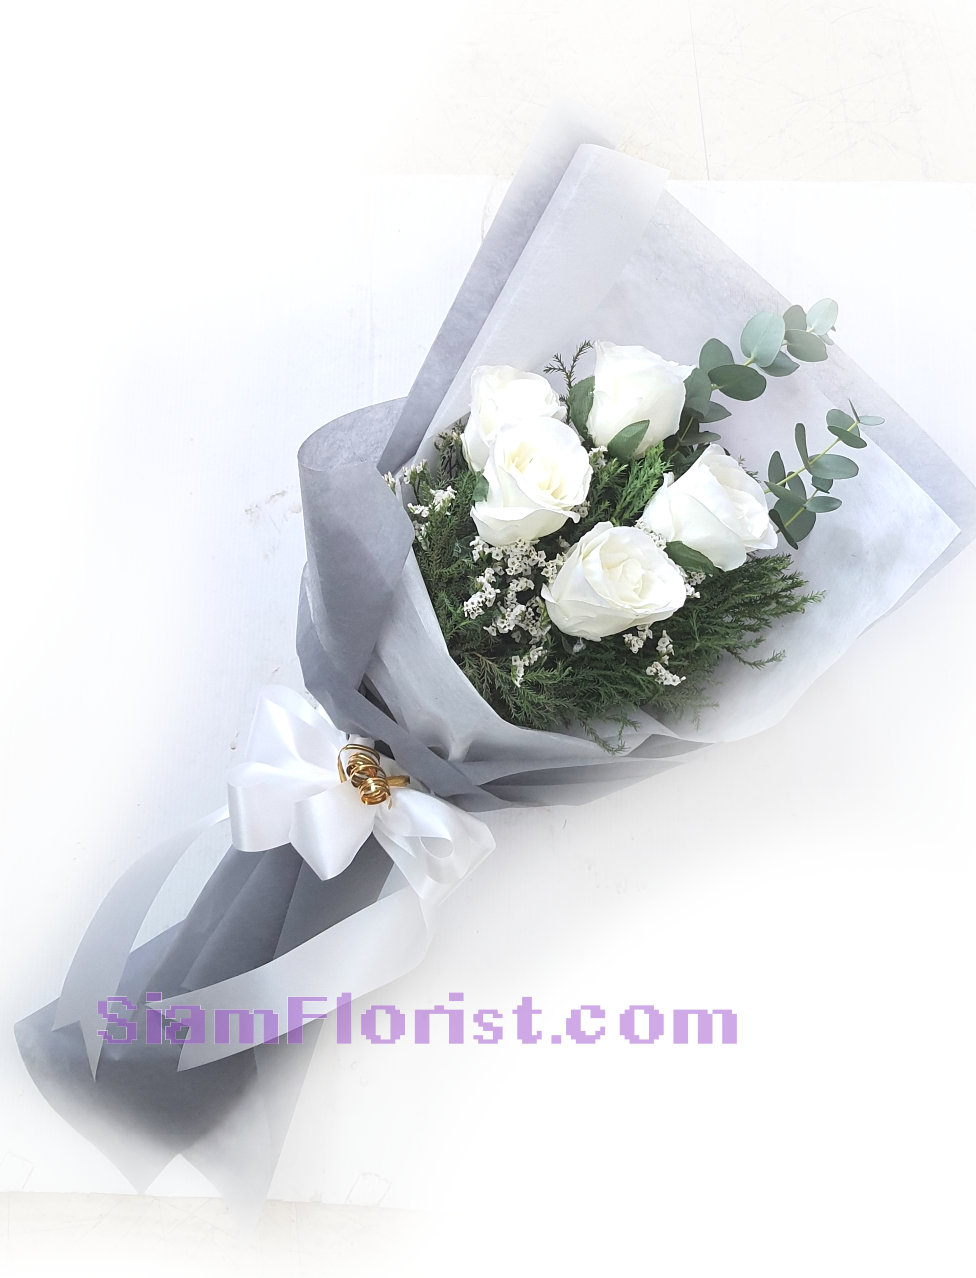 01874RO Bouquet of Roses